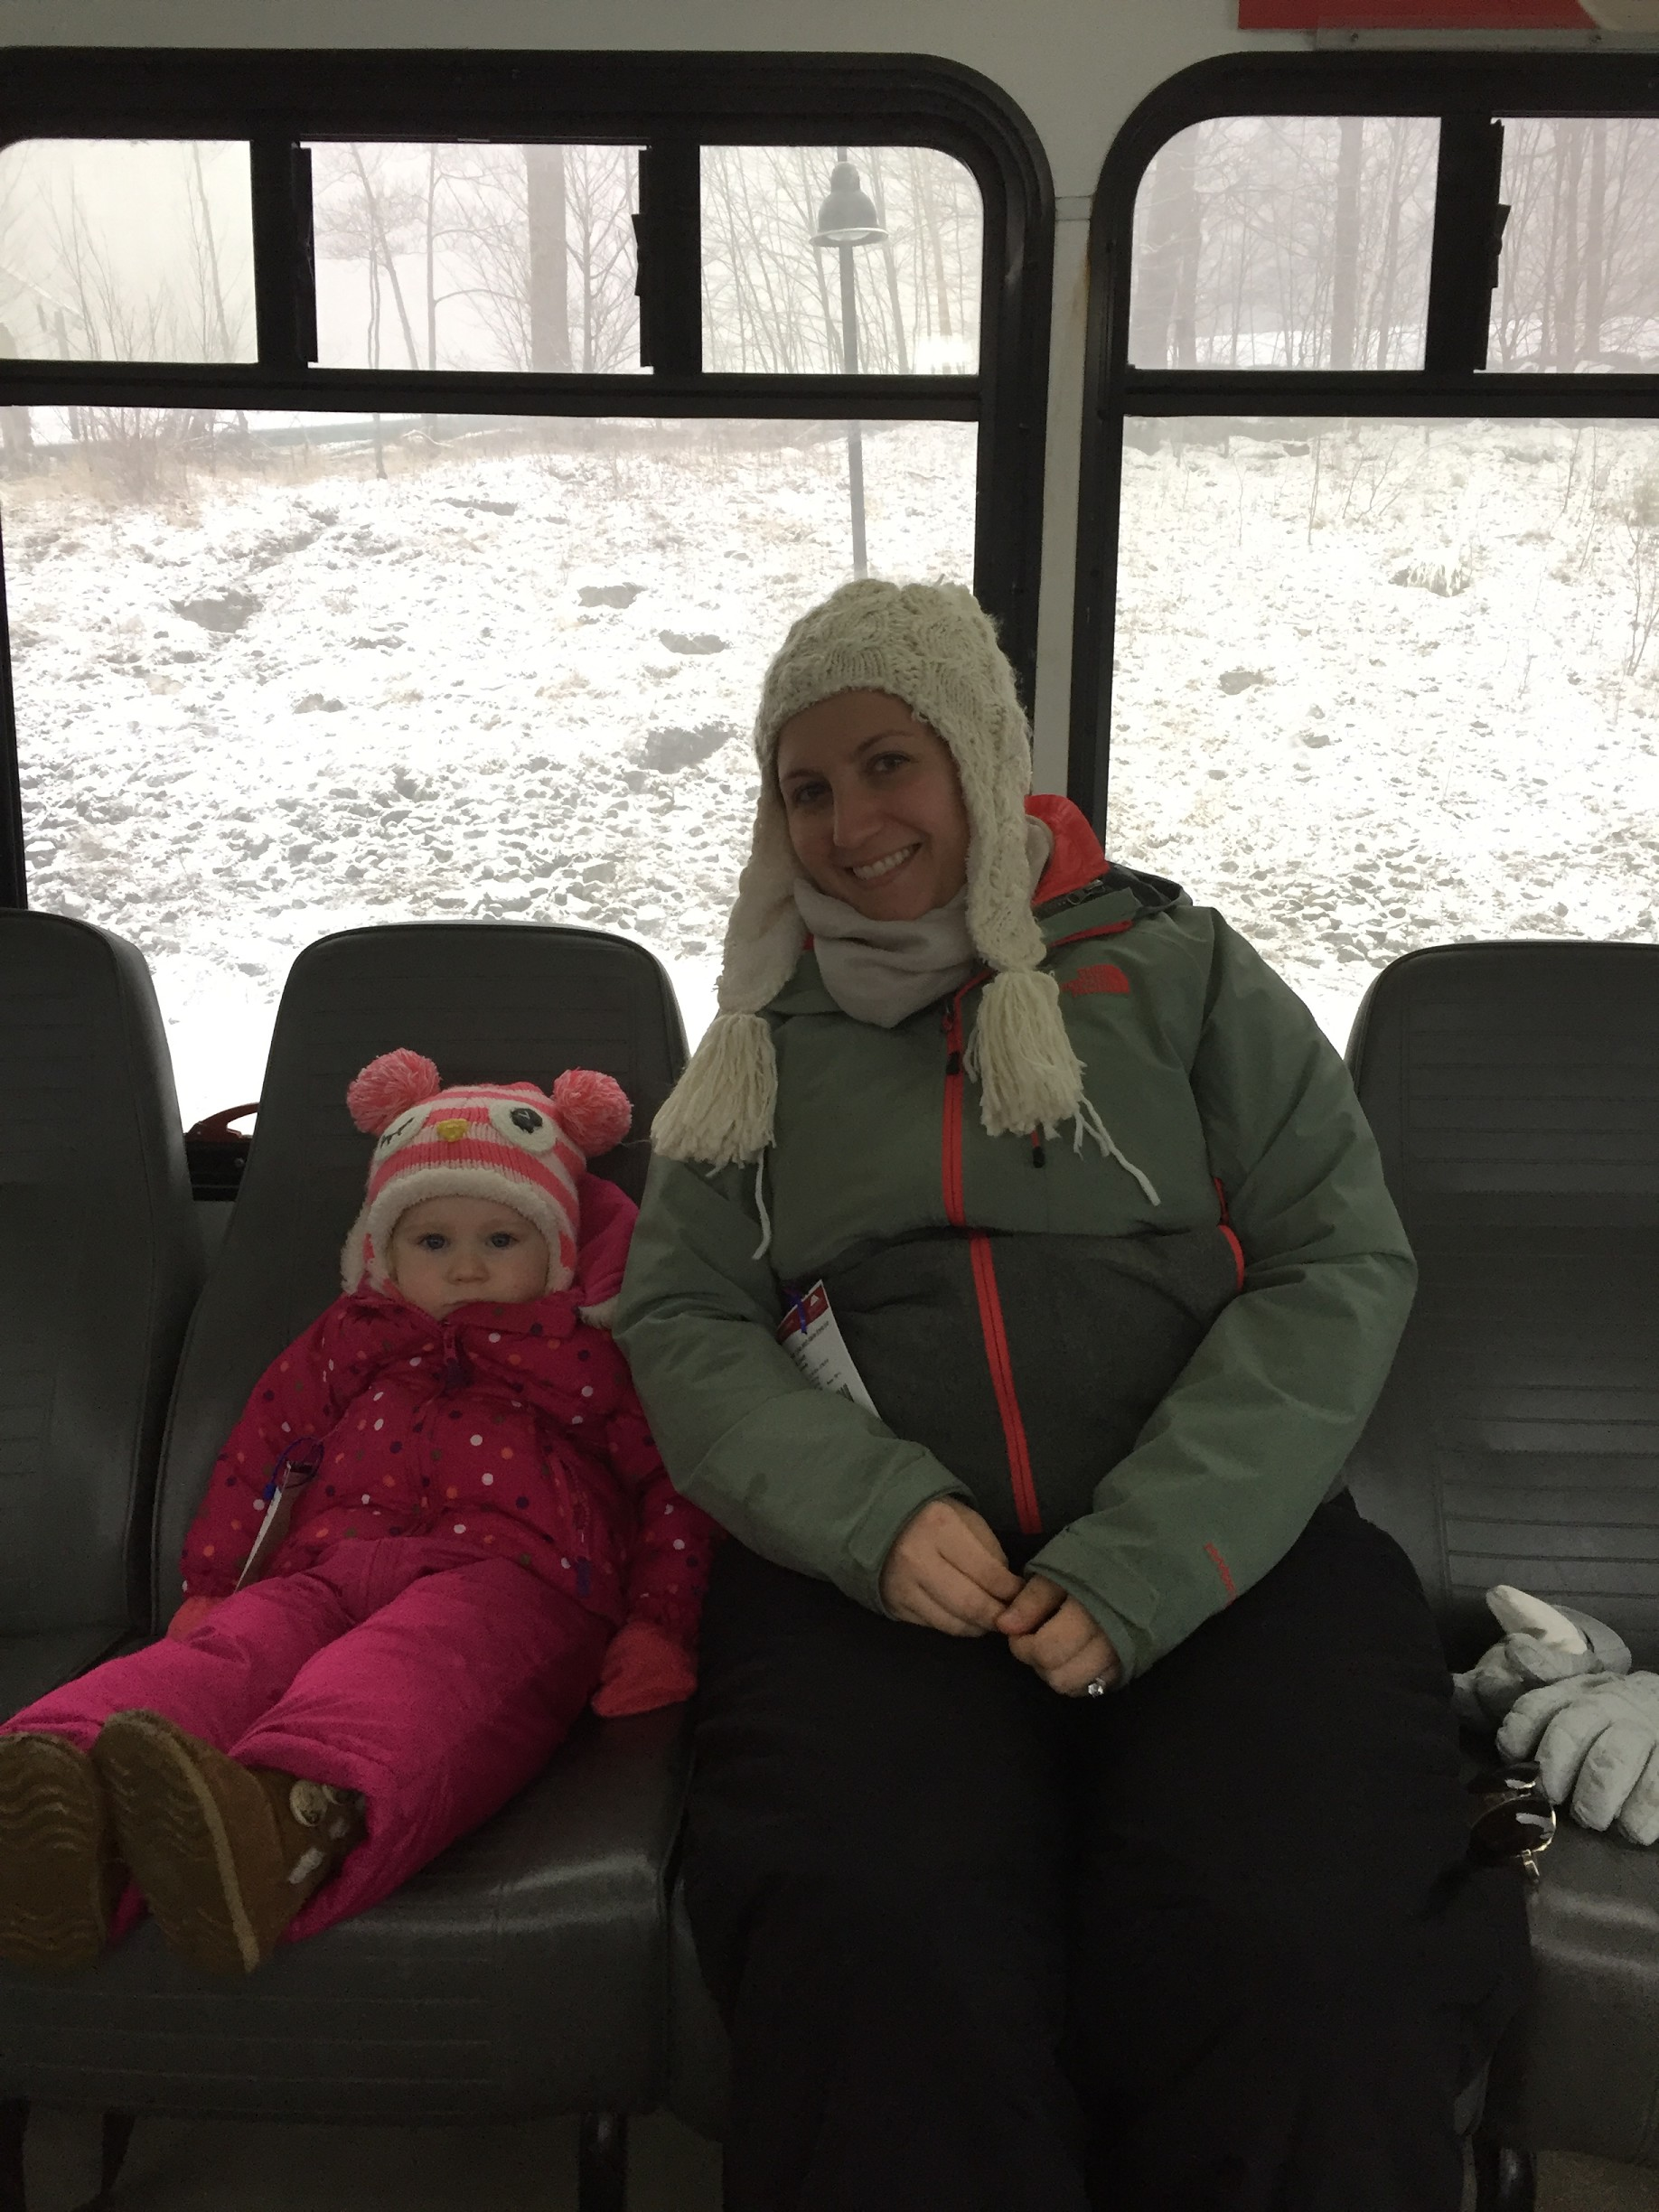 Molly's favorite part of the ski trip: bus rides